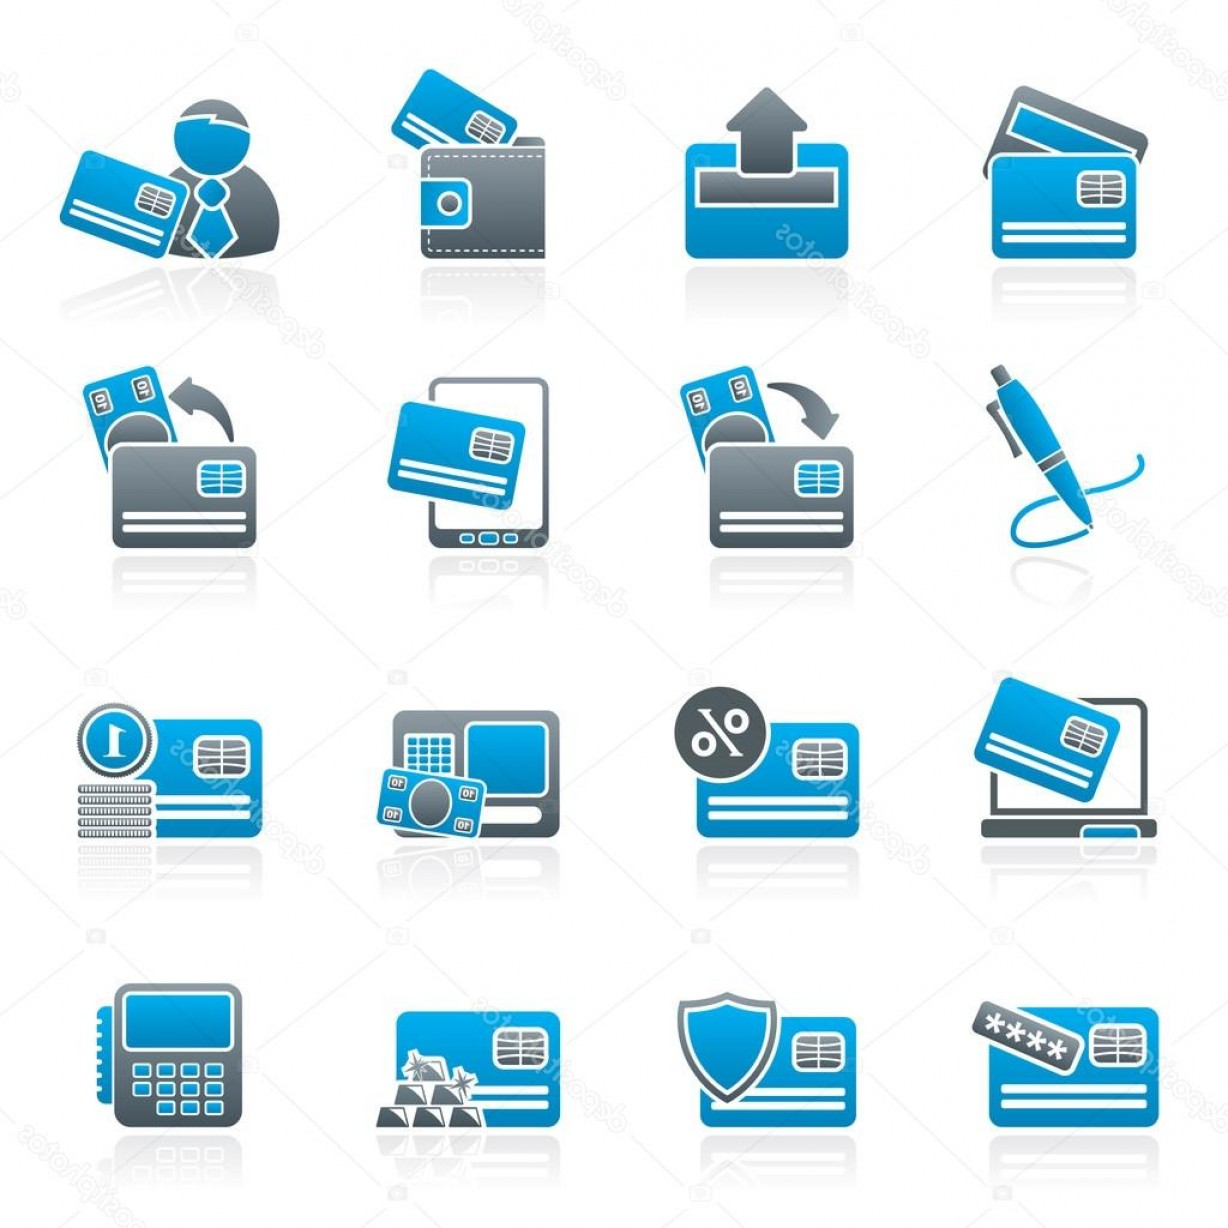 Credit Card Logos Vector: Stock Illustration Credit Card Pos Terminal And